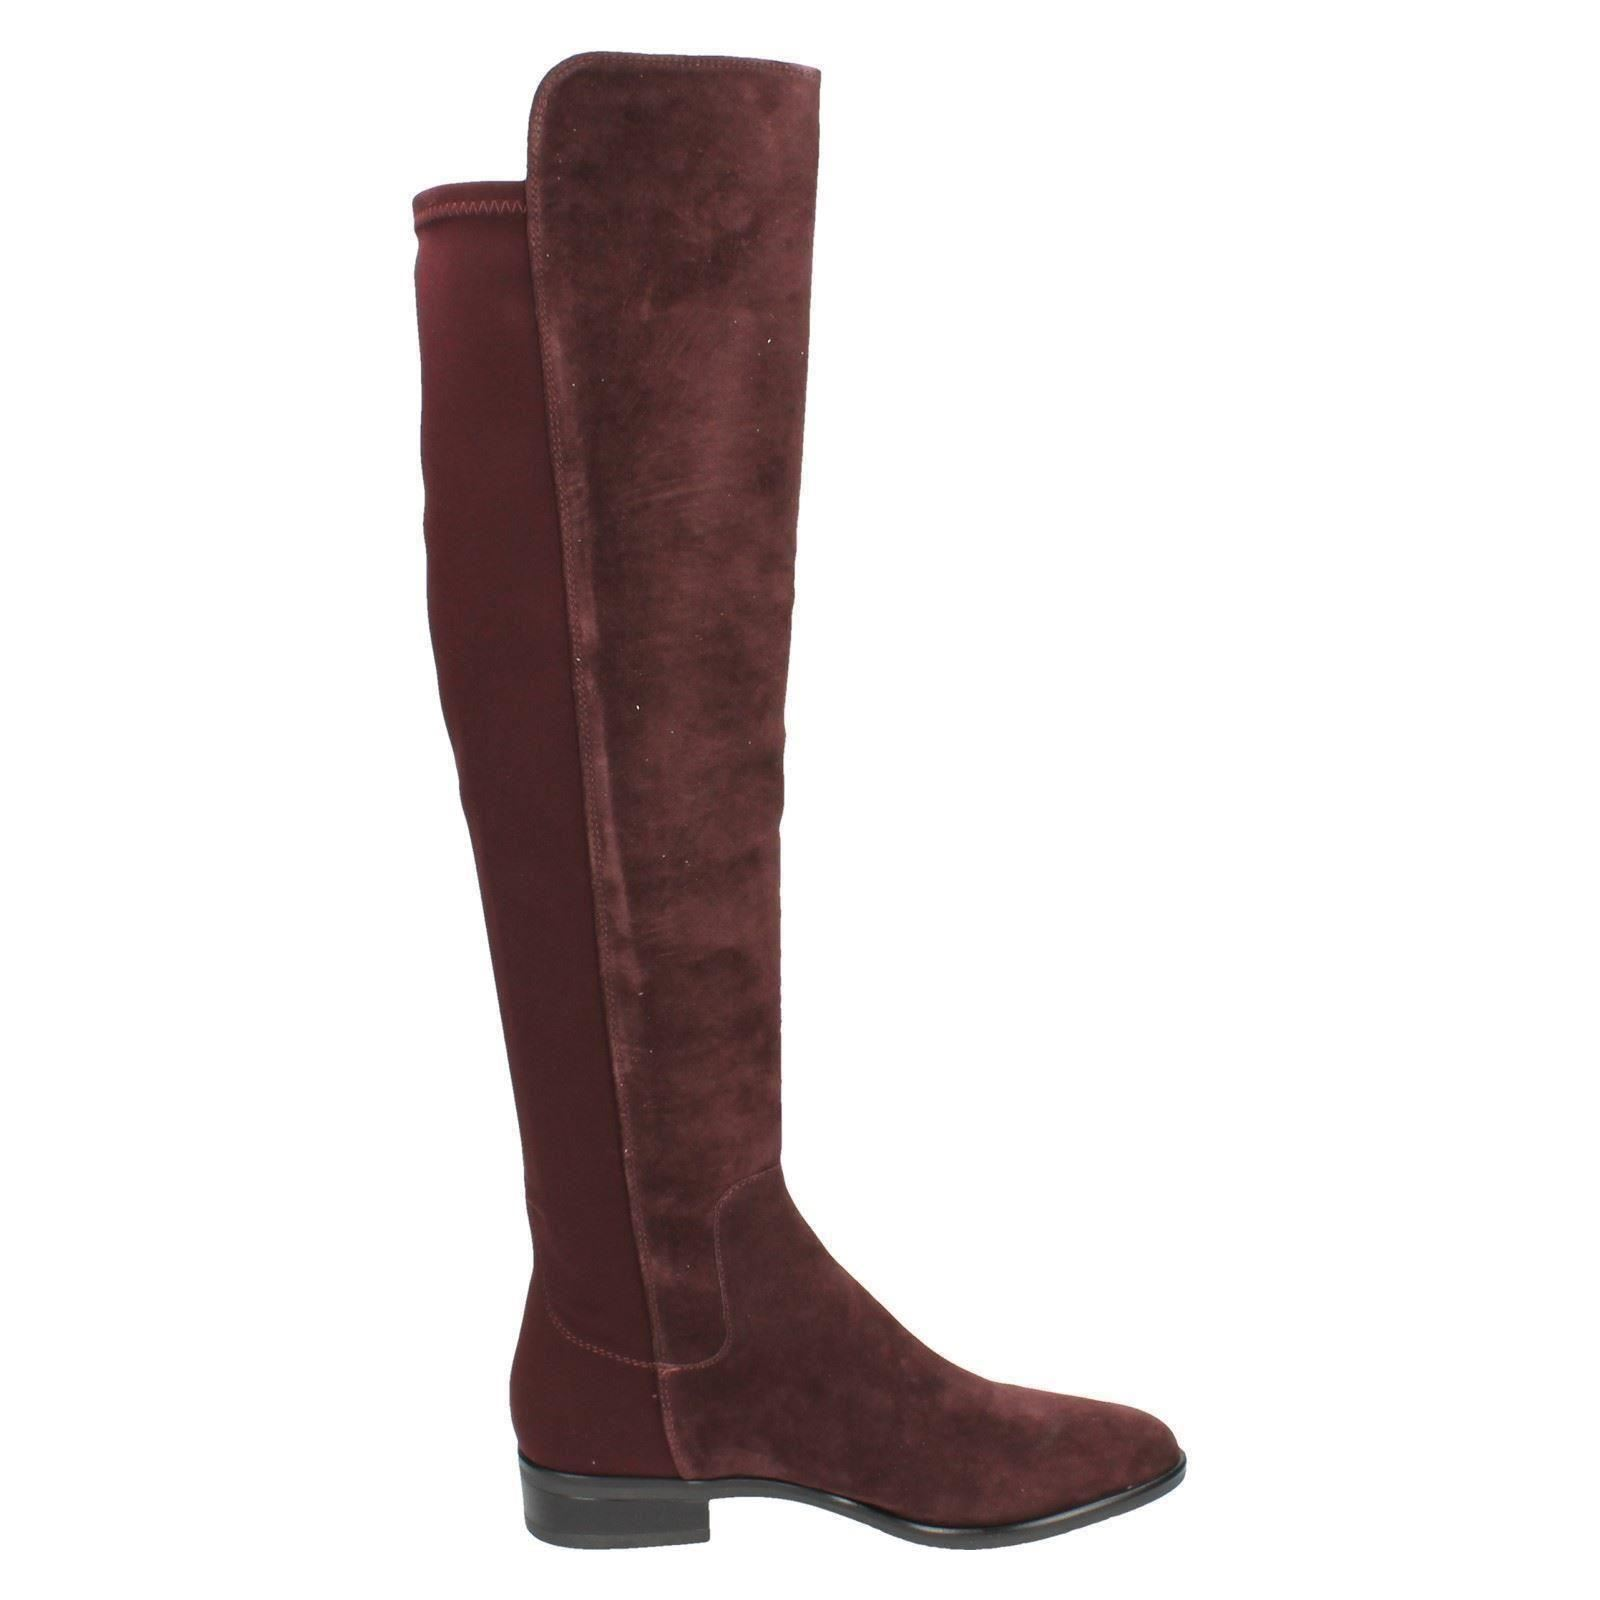 clarks pull on knee length boots caddy ebay